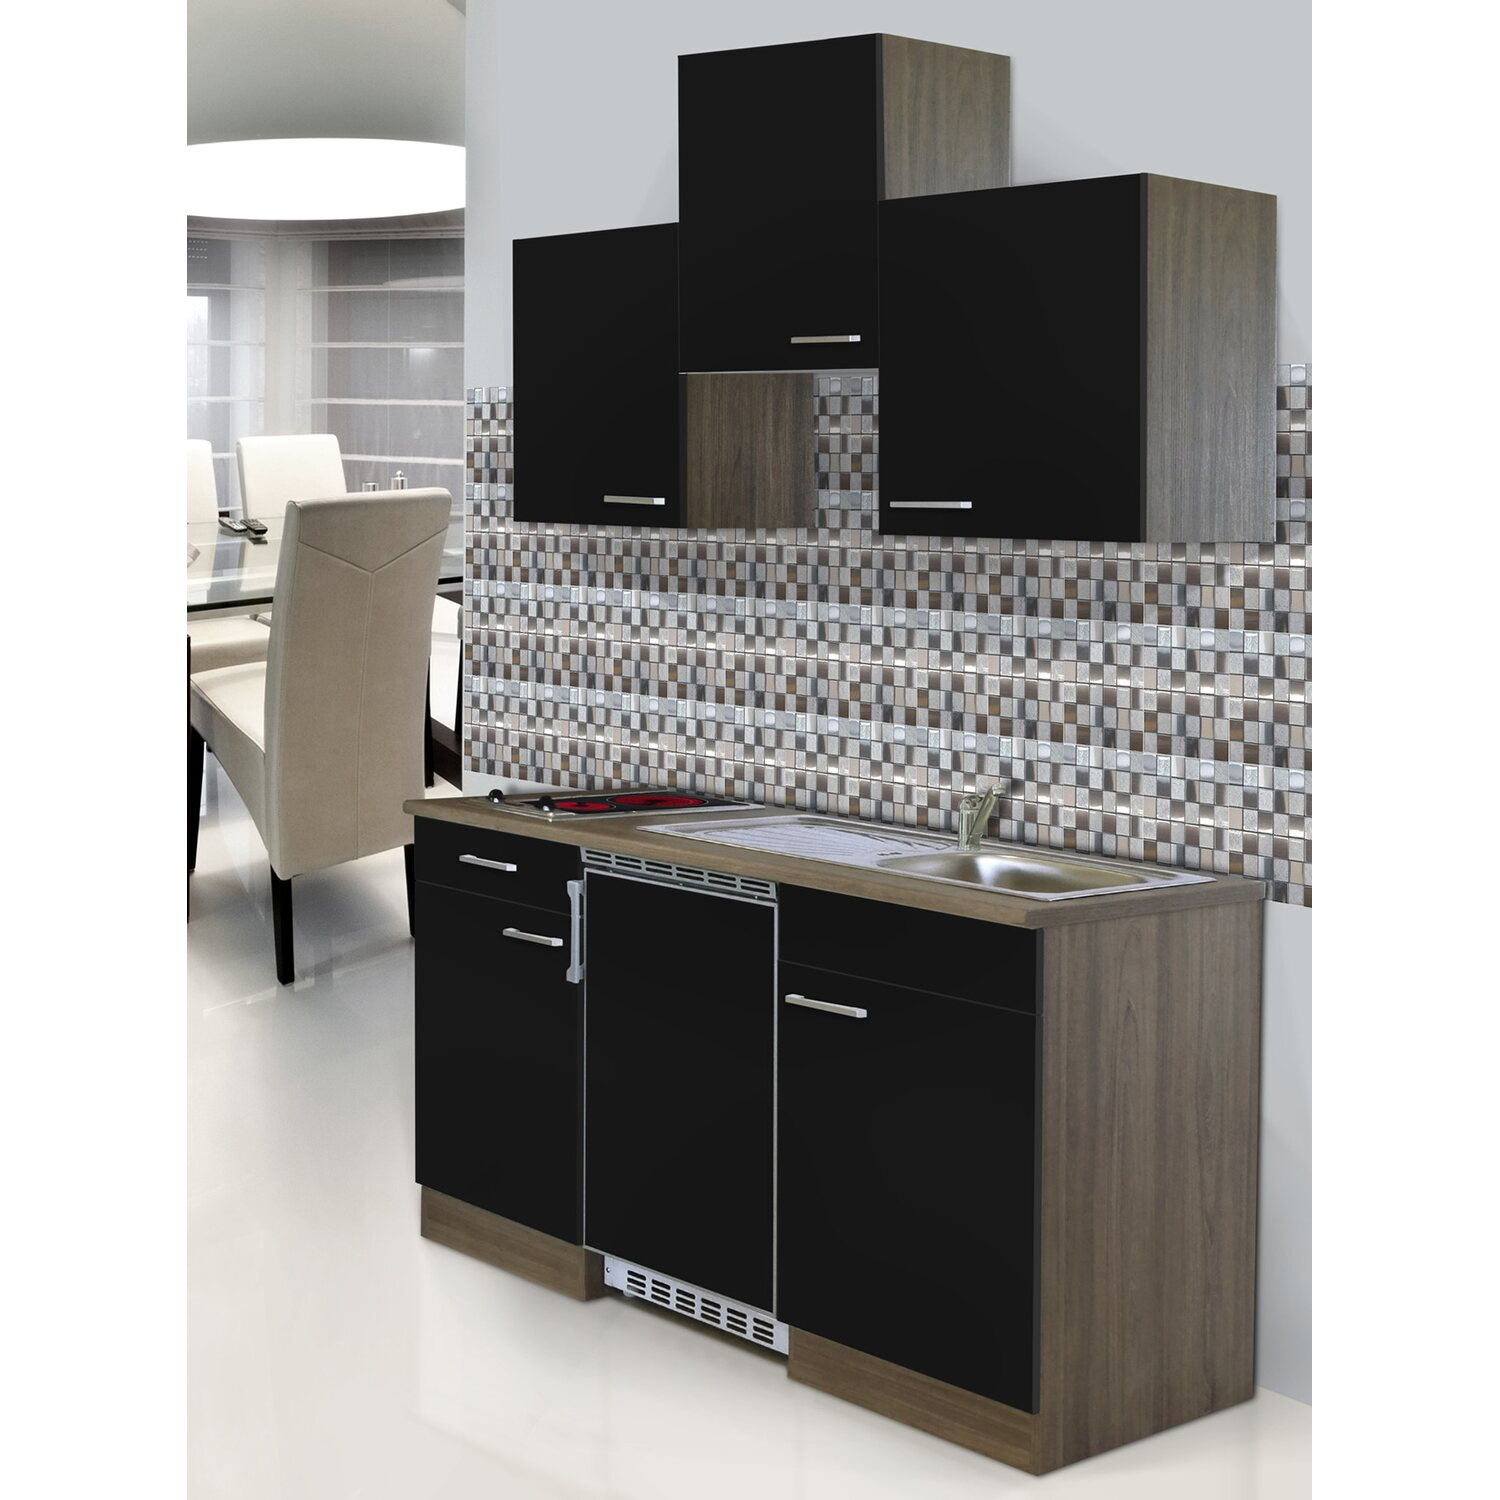 minikche bauhaus design khlschrank khlschrank prestige kpril khlschrnke von v zug architonic. Black Bedroom Furniture Sets. Home Design Ideas